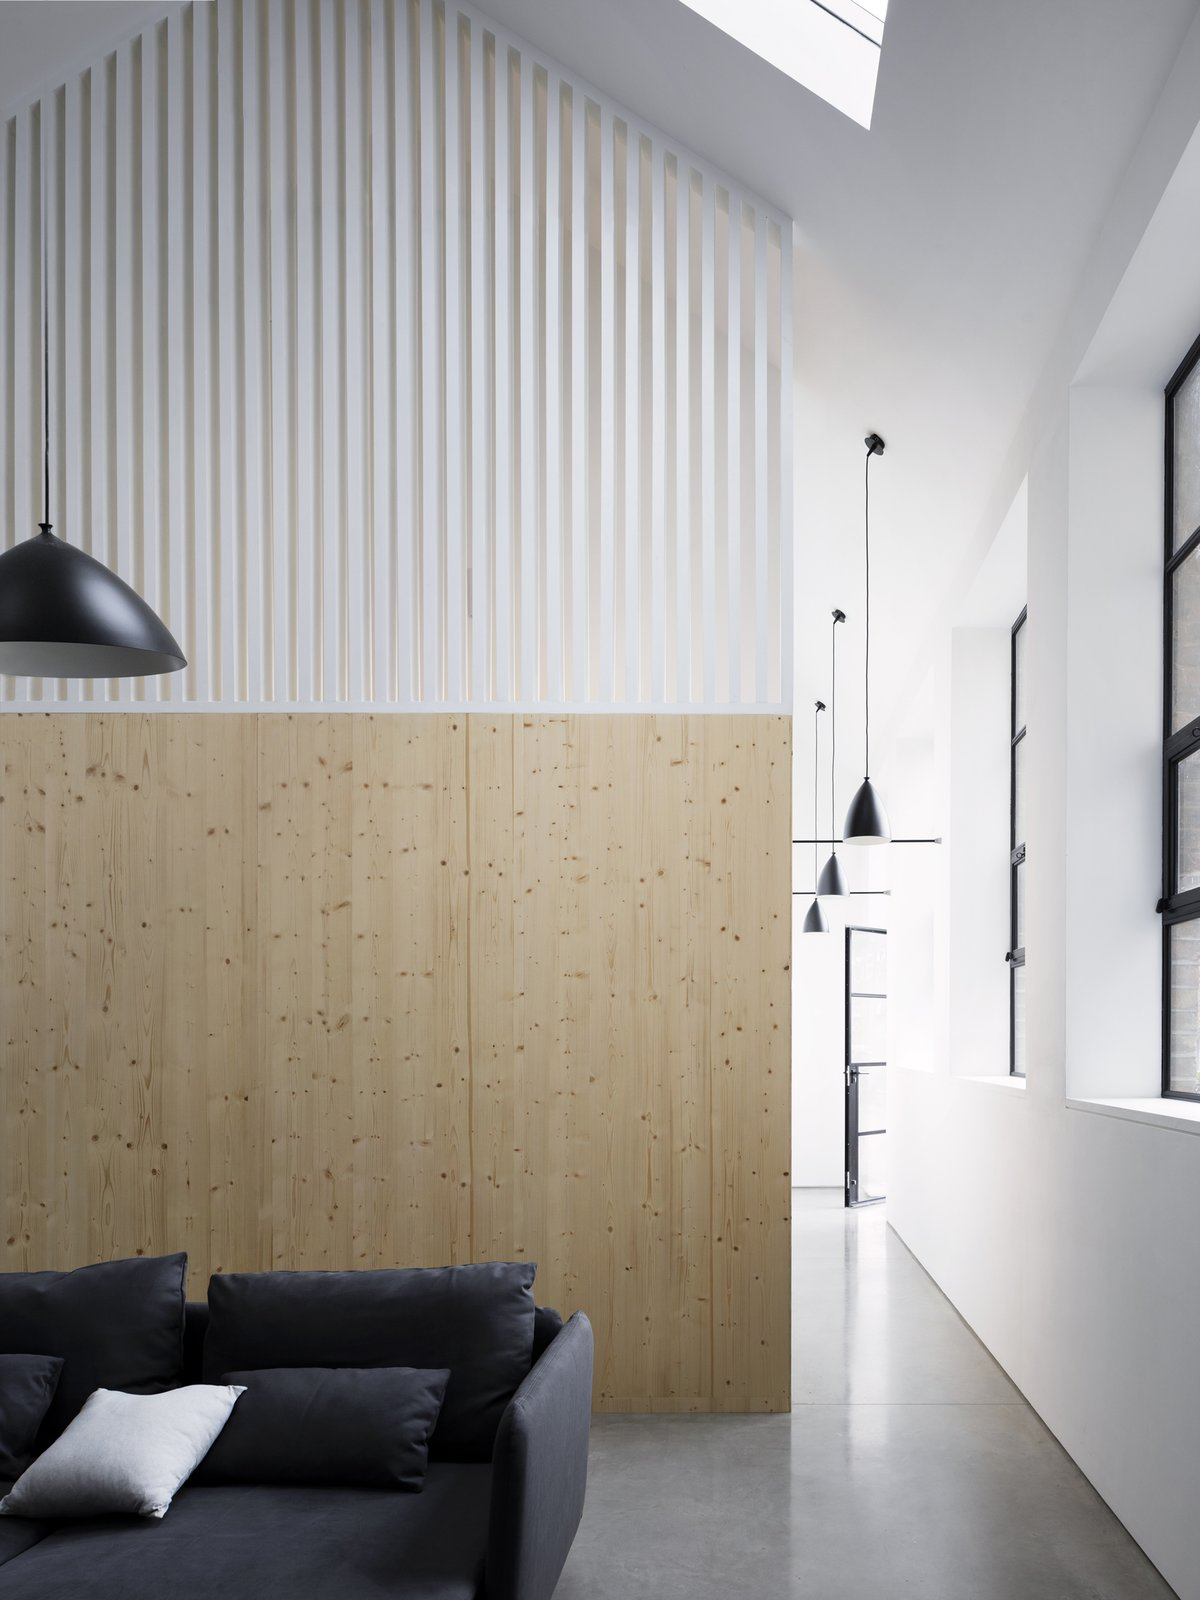 Living Room, Concrete Floor, Pendant Lighting, and Sectional The staircase is hidden between wood paneled walls adorned with white, wooden slats, allowing light to filter into the stairway.   Photo 8 of 12 in A Forgotten Warehouse Is Reborn Into a Light-Filled London Home